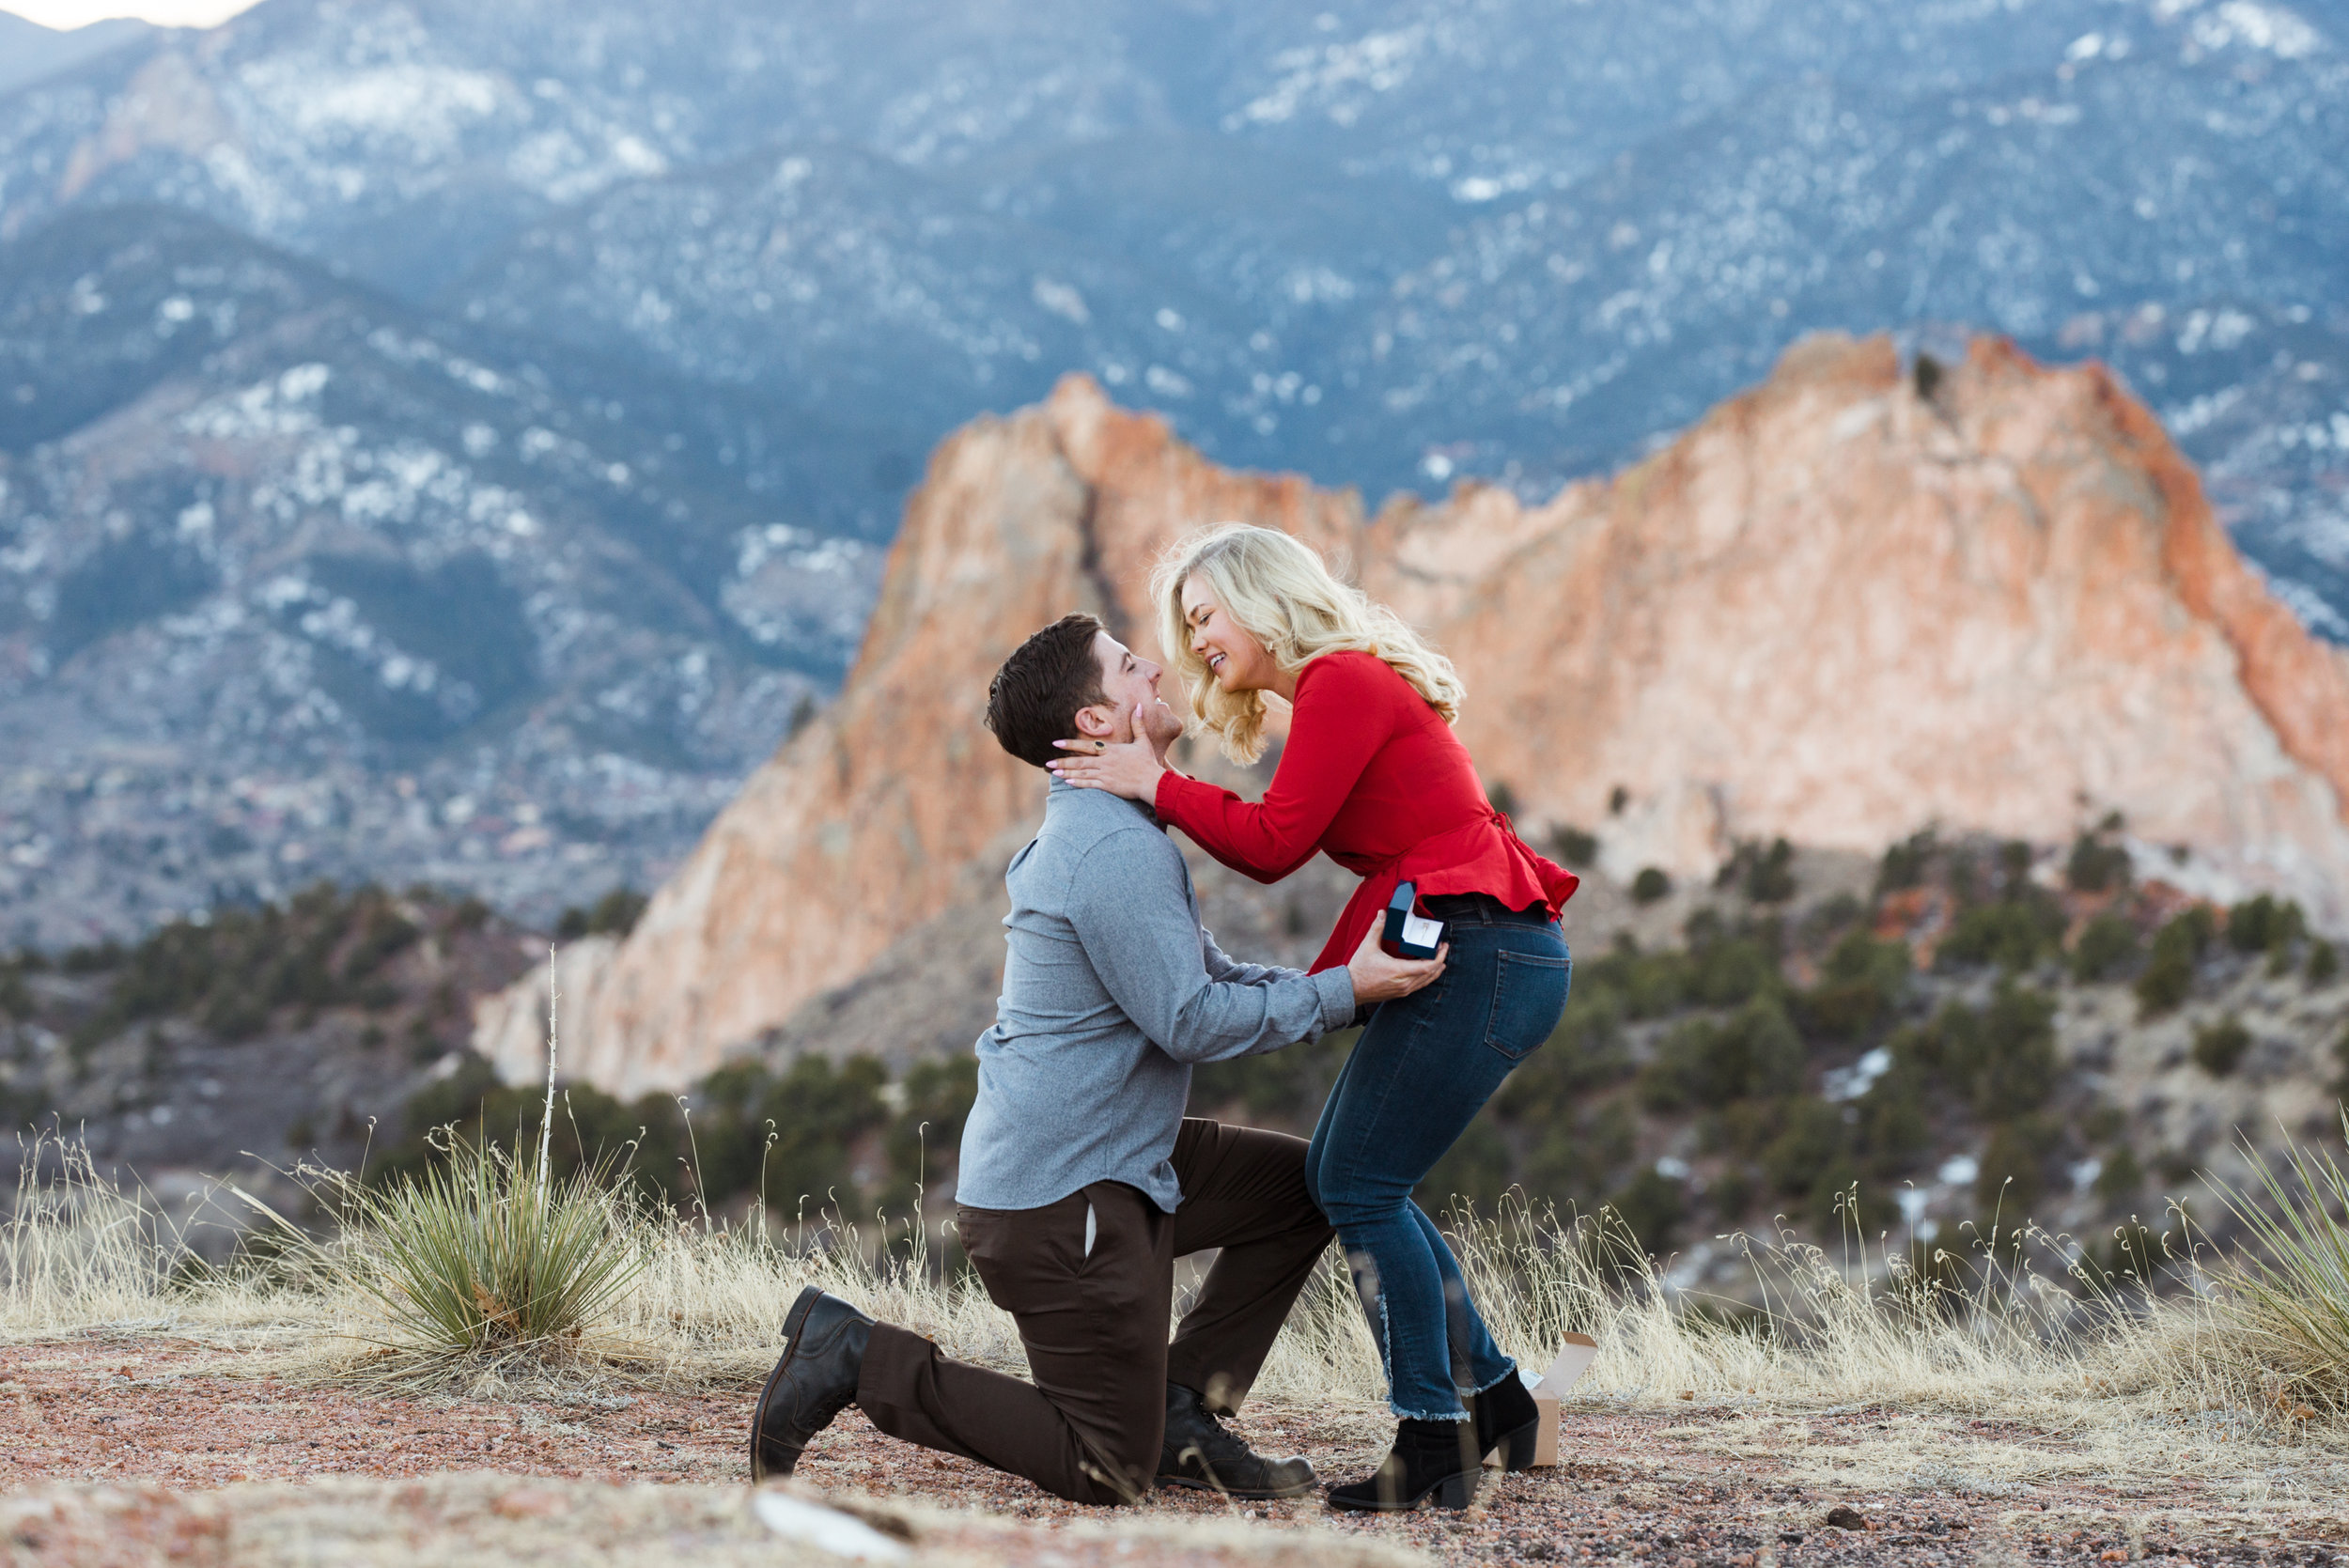 She says yes in this colorful Colorado surprise proposal!